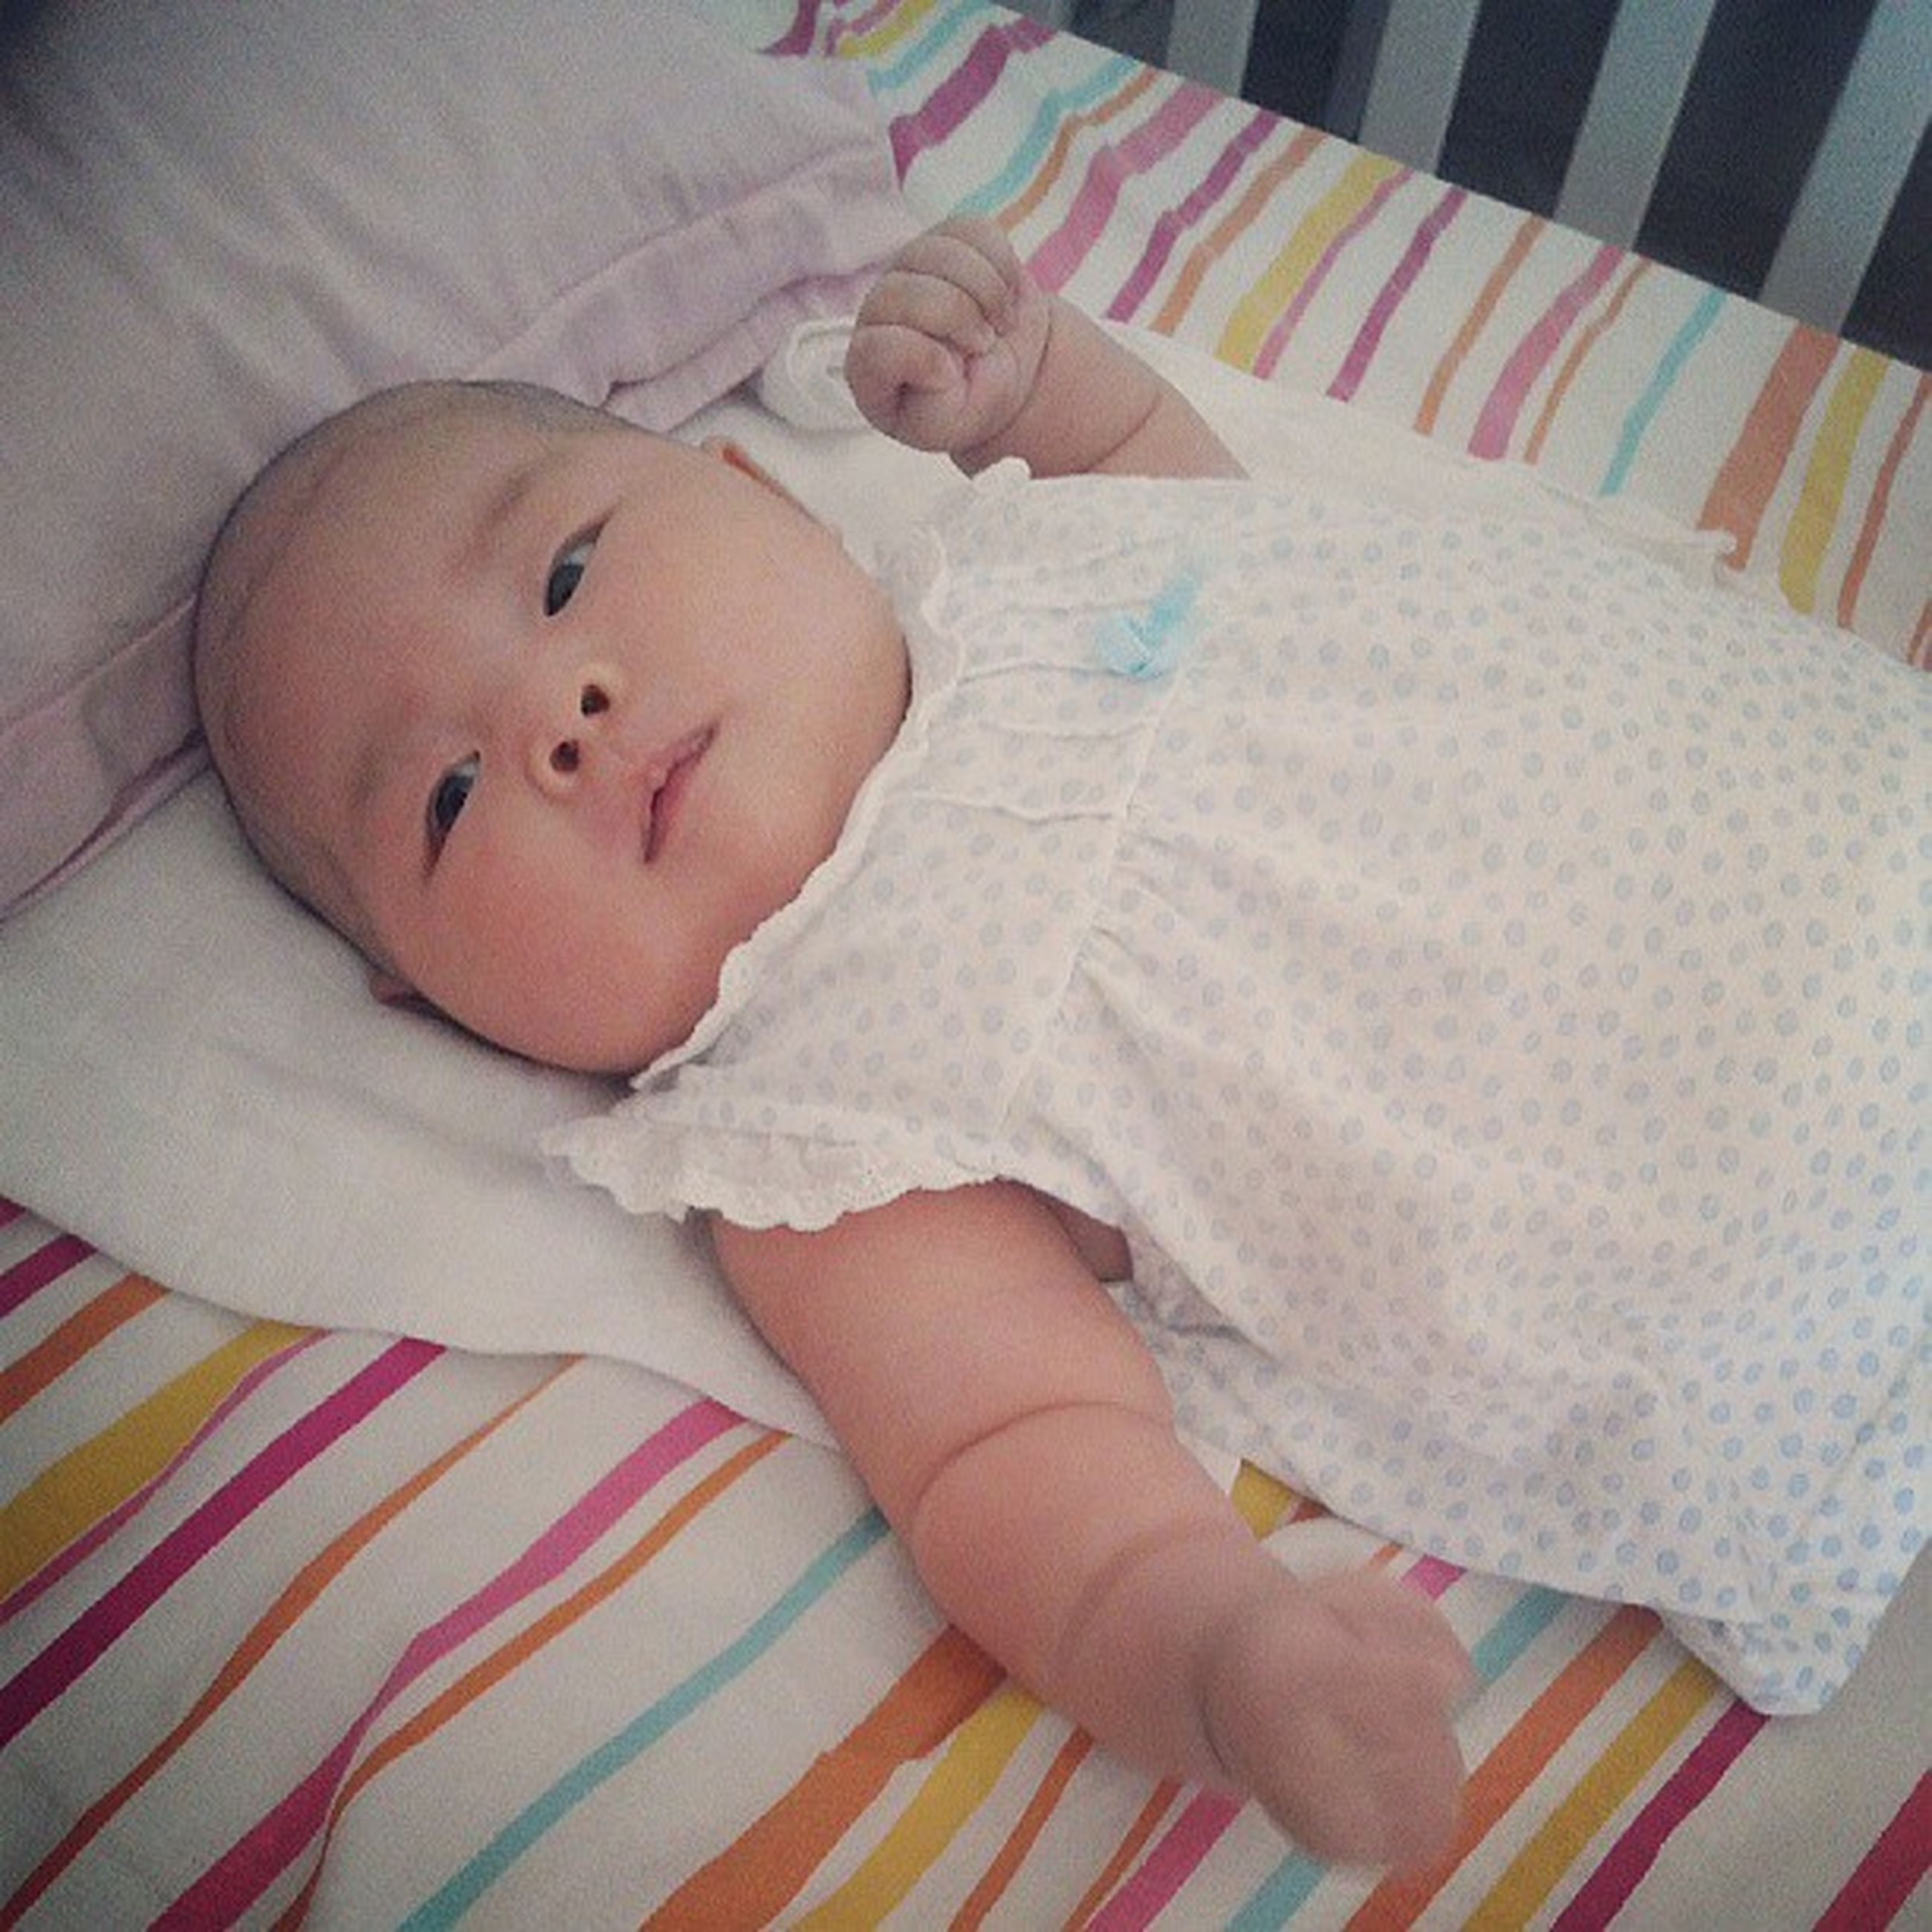 childhood, indoors, innocence, babyhood, baby, cute, toddler, elementary age, bed, person, relaxation, boys, unknown gender, girls, baby clothing, home interior, high angle view, lying down